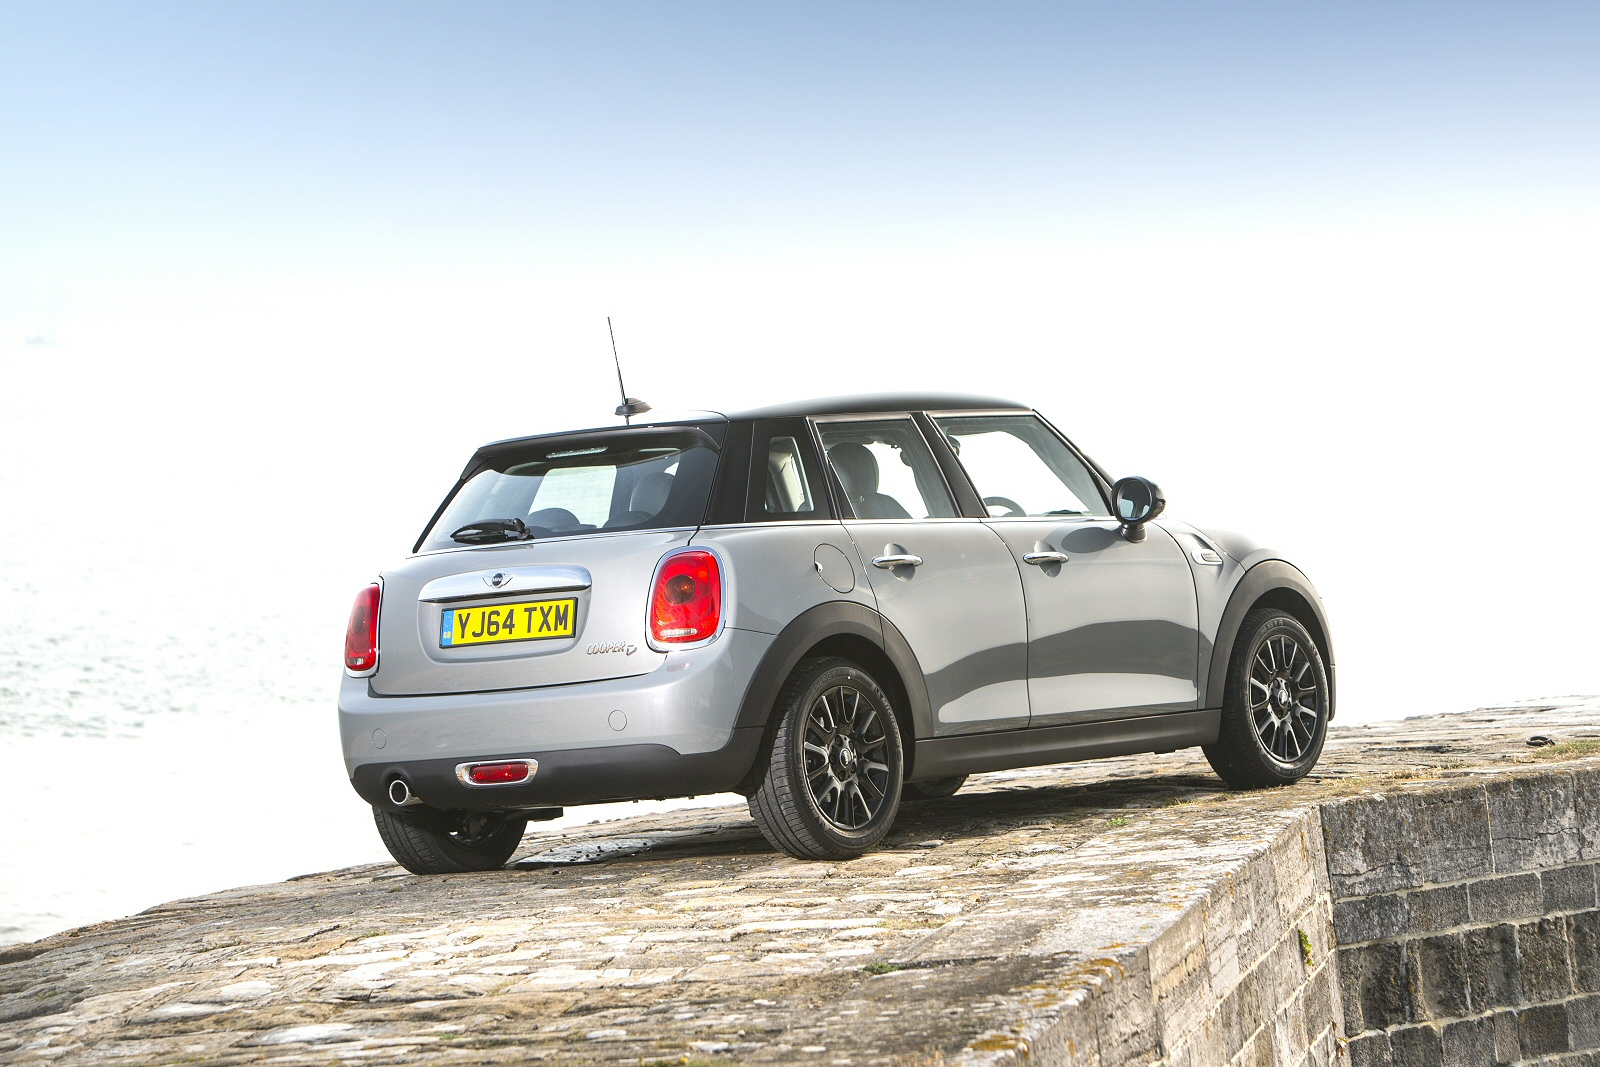 ... residual values for the five-door cars further driving down the pence per mile cost of the Cooper D. With insurance rated at a reasonable Group 18 ... & SENSE AND SENSIBILITY\u0027 - MINI 5-Door Hatch Cooper D Independent ...